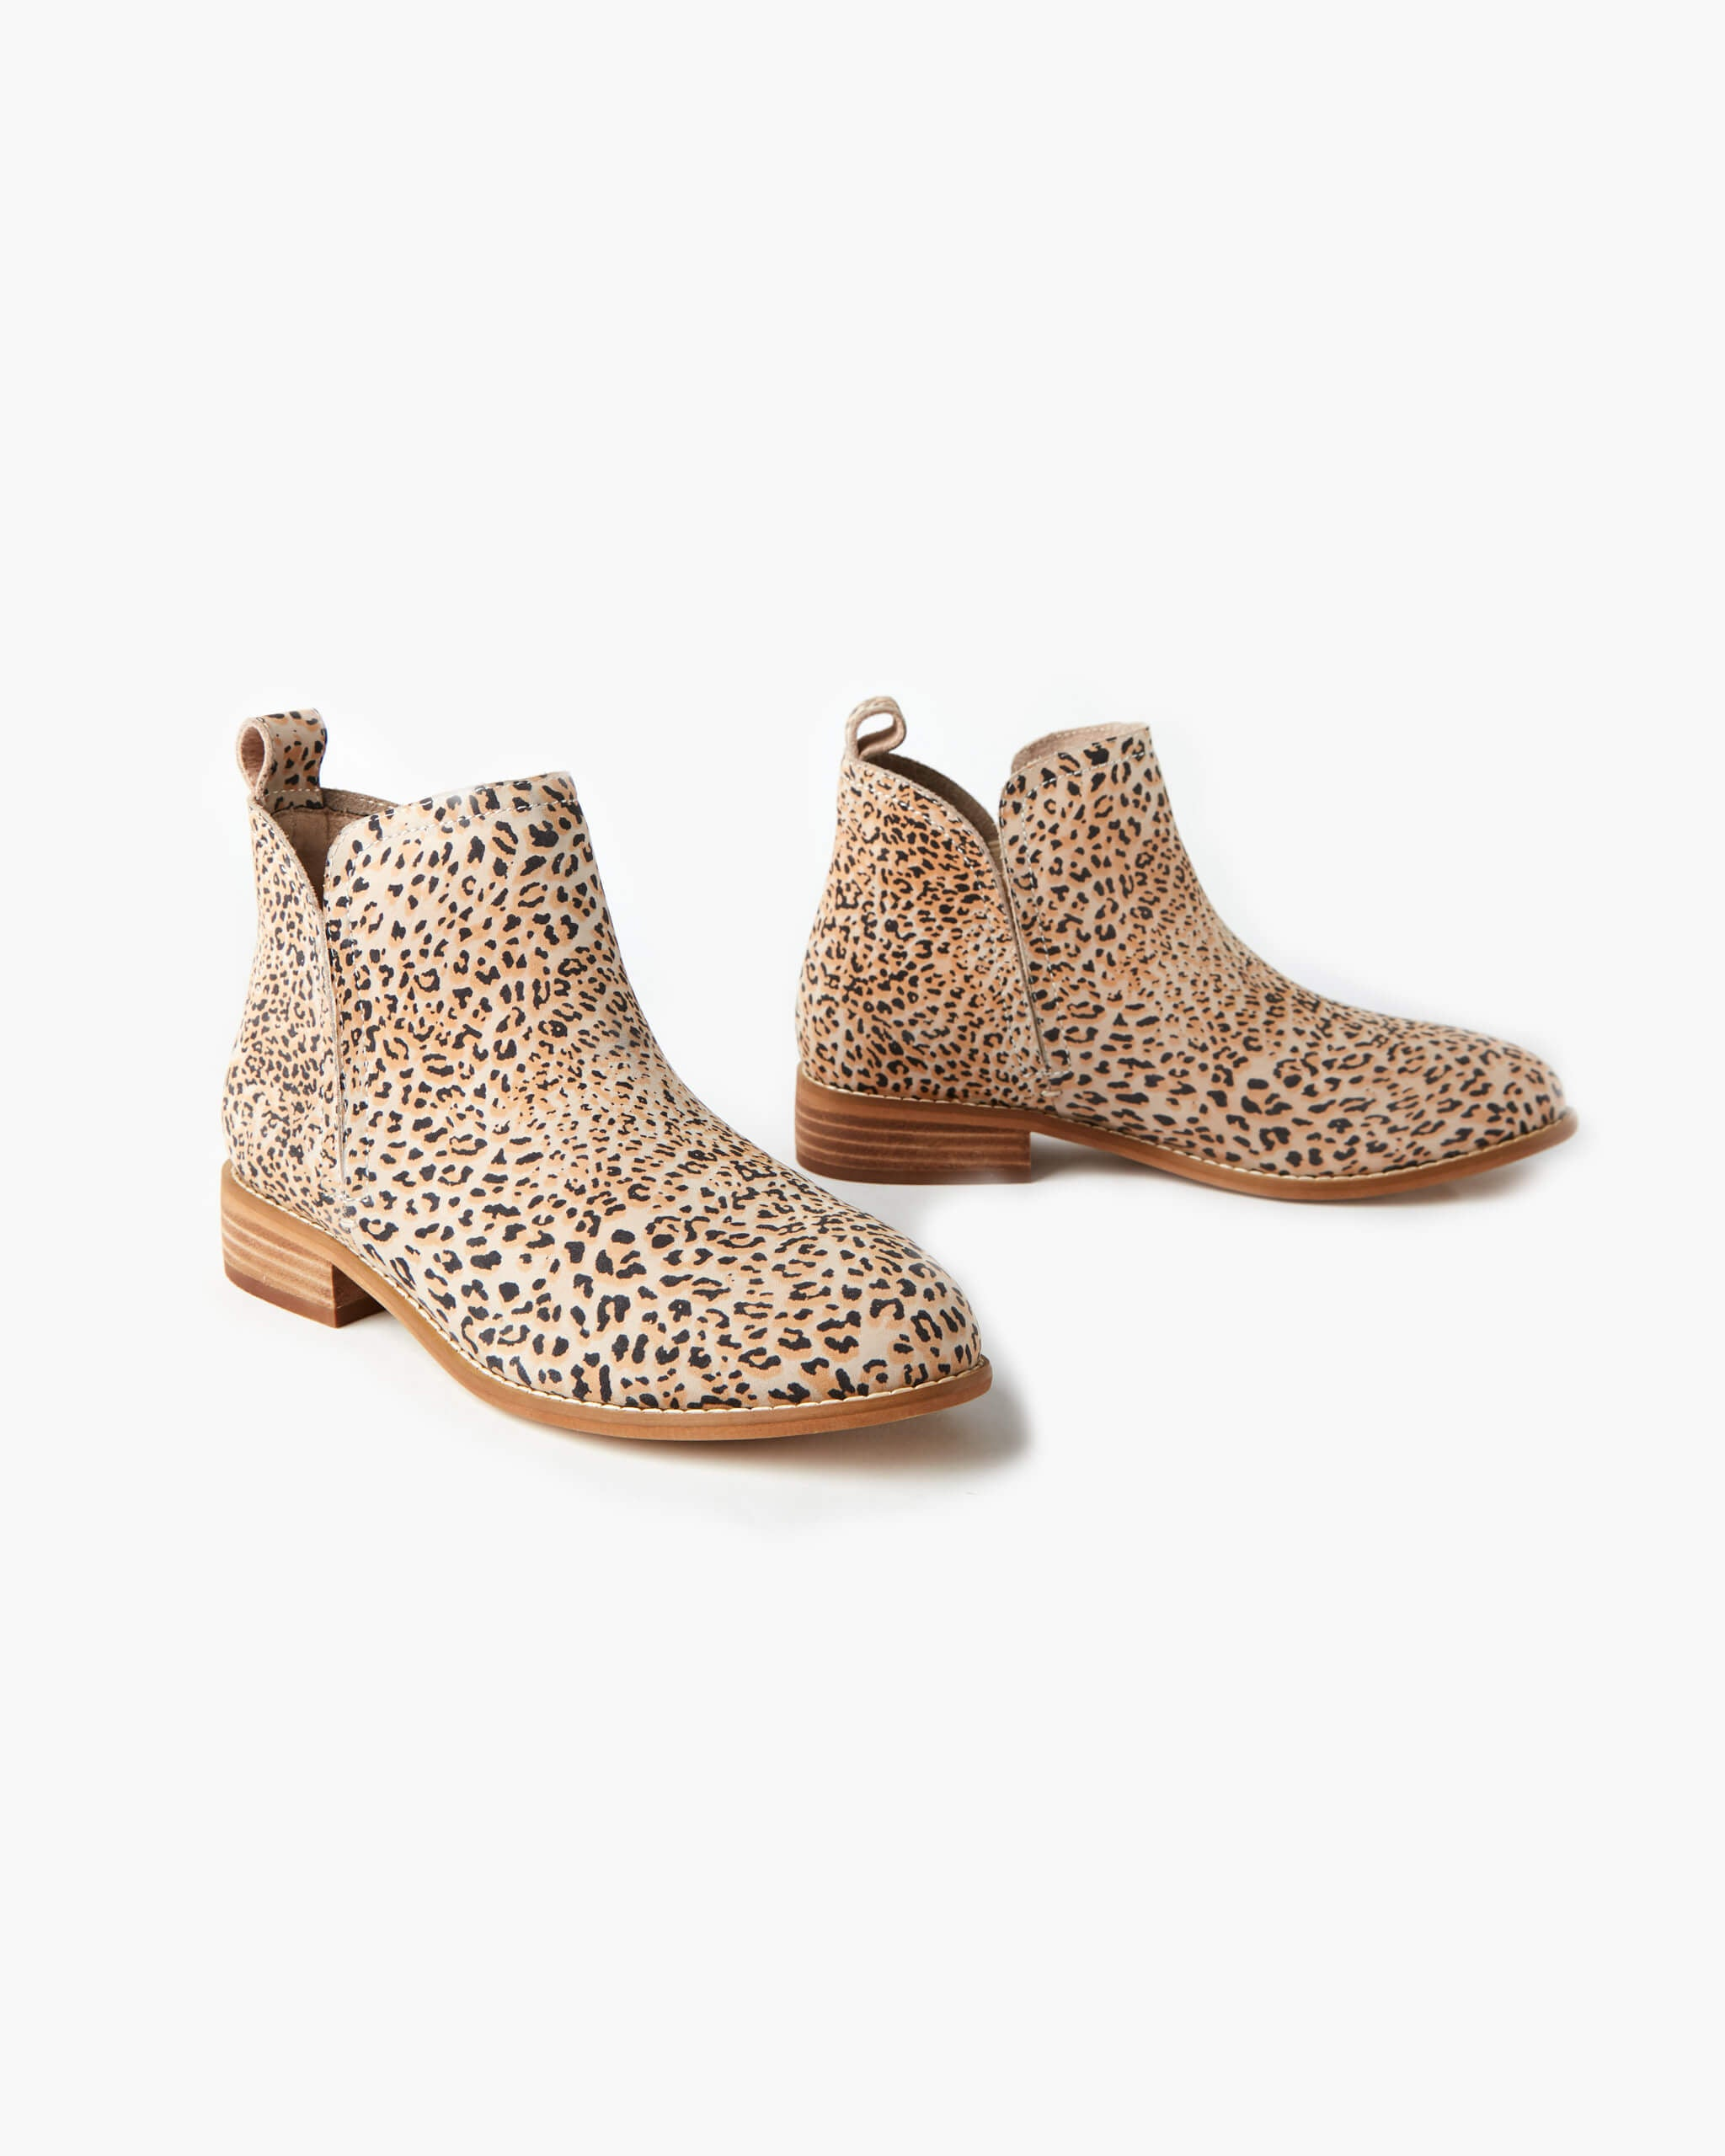 Douglas Leather Ankle Boot - Honey Leopard